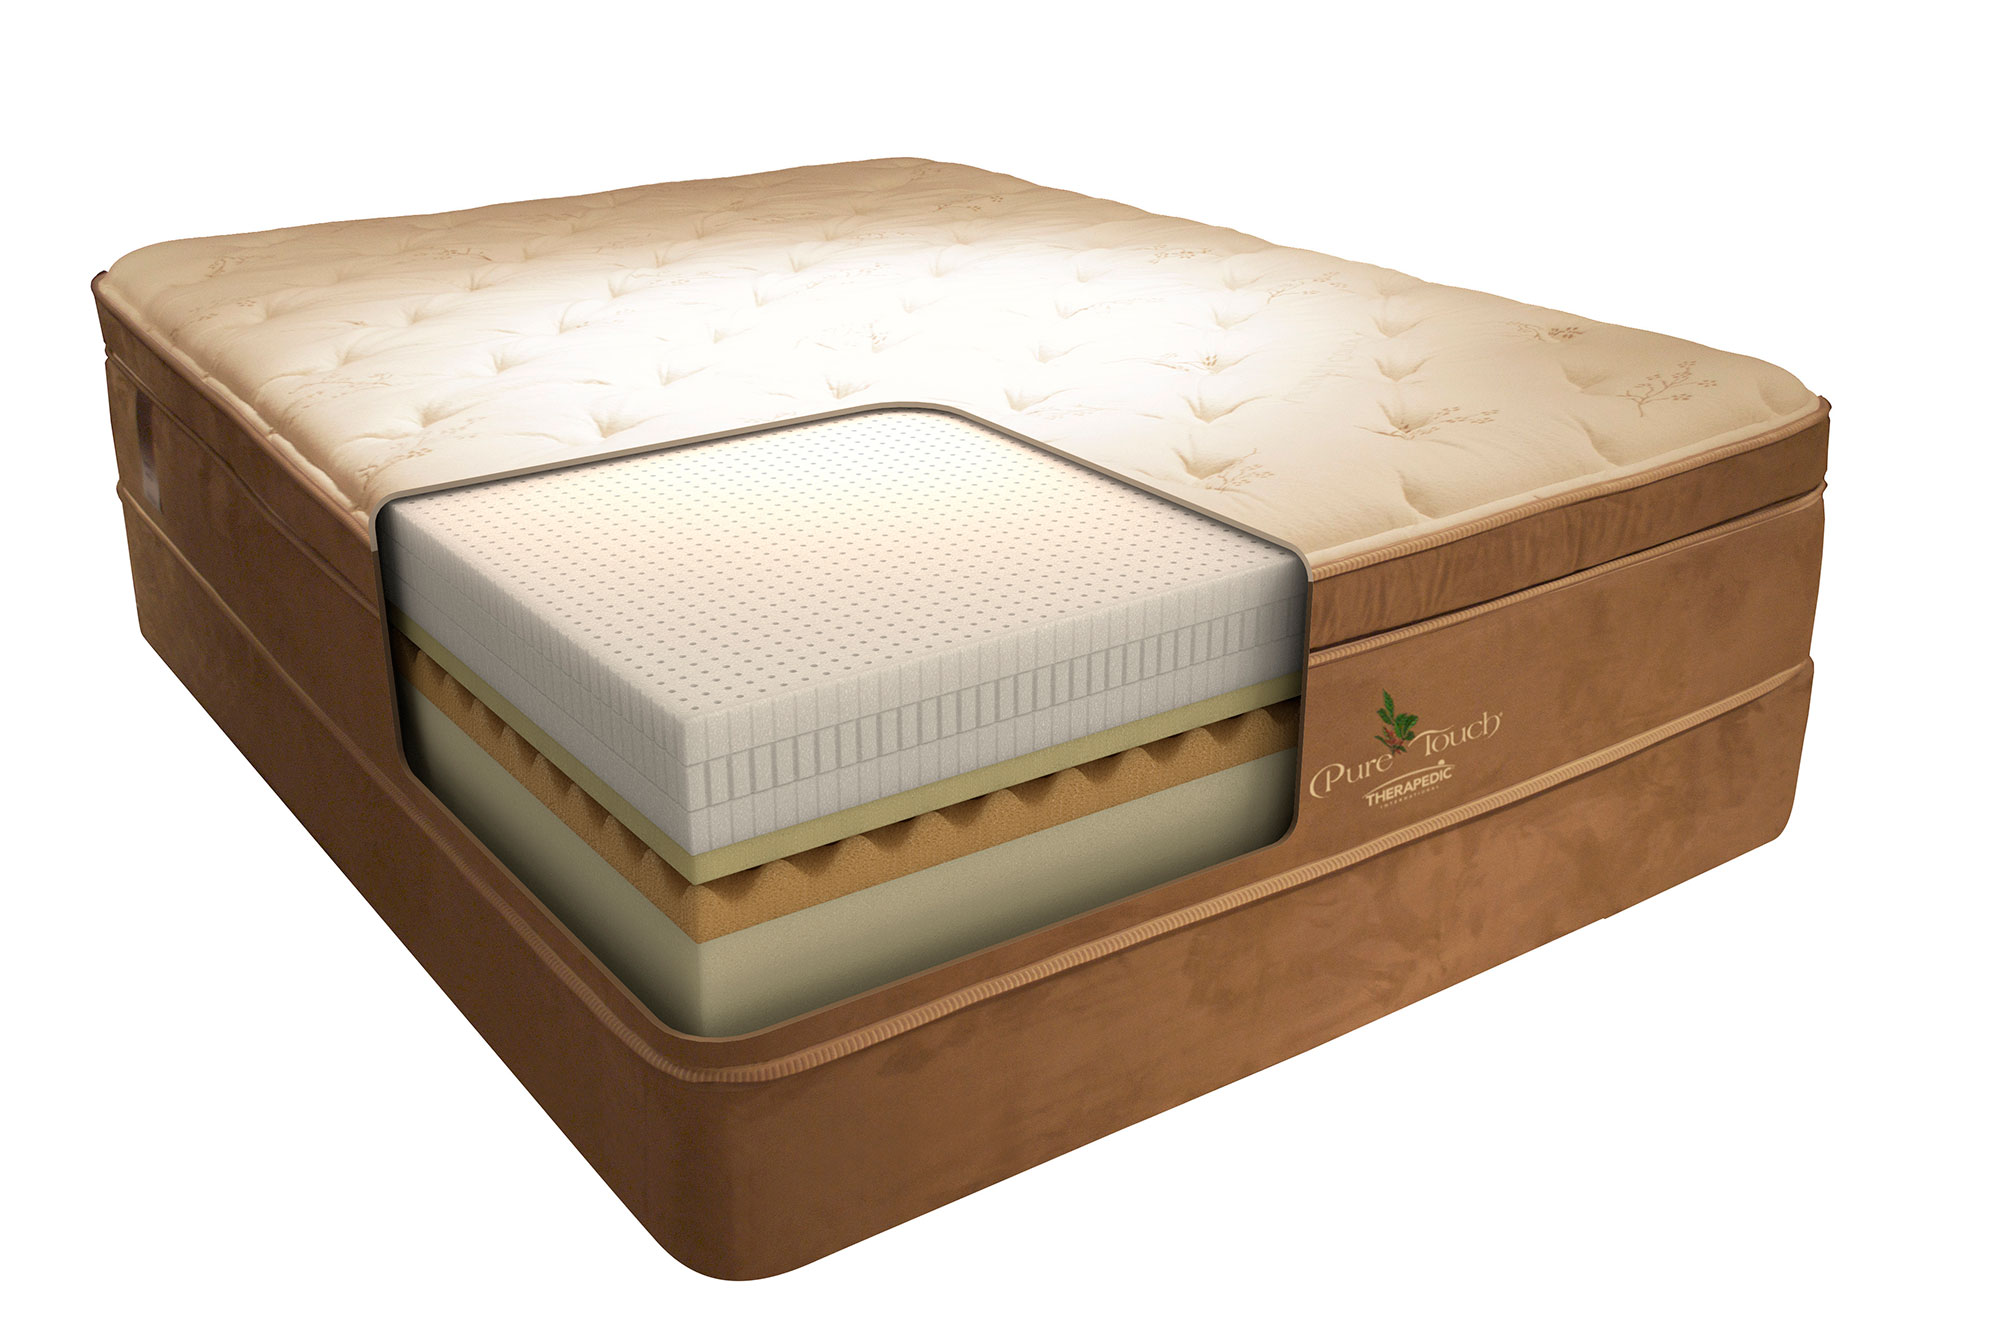 Pure Touch therapedic cutaway showing the foam materials inside of the mattress